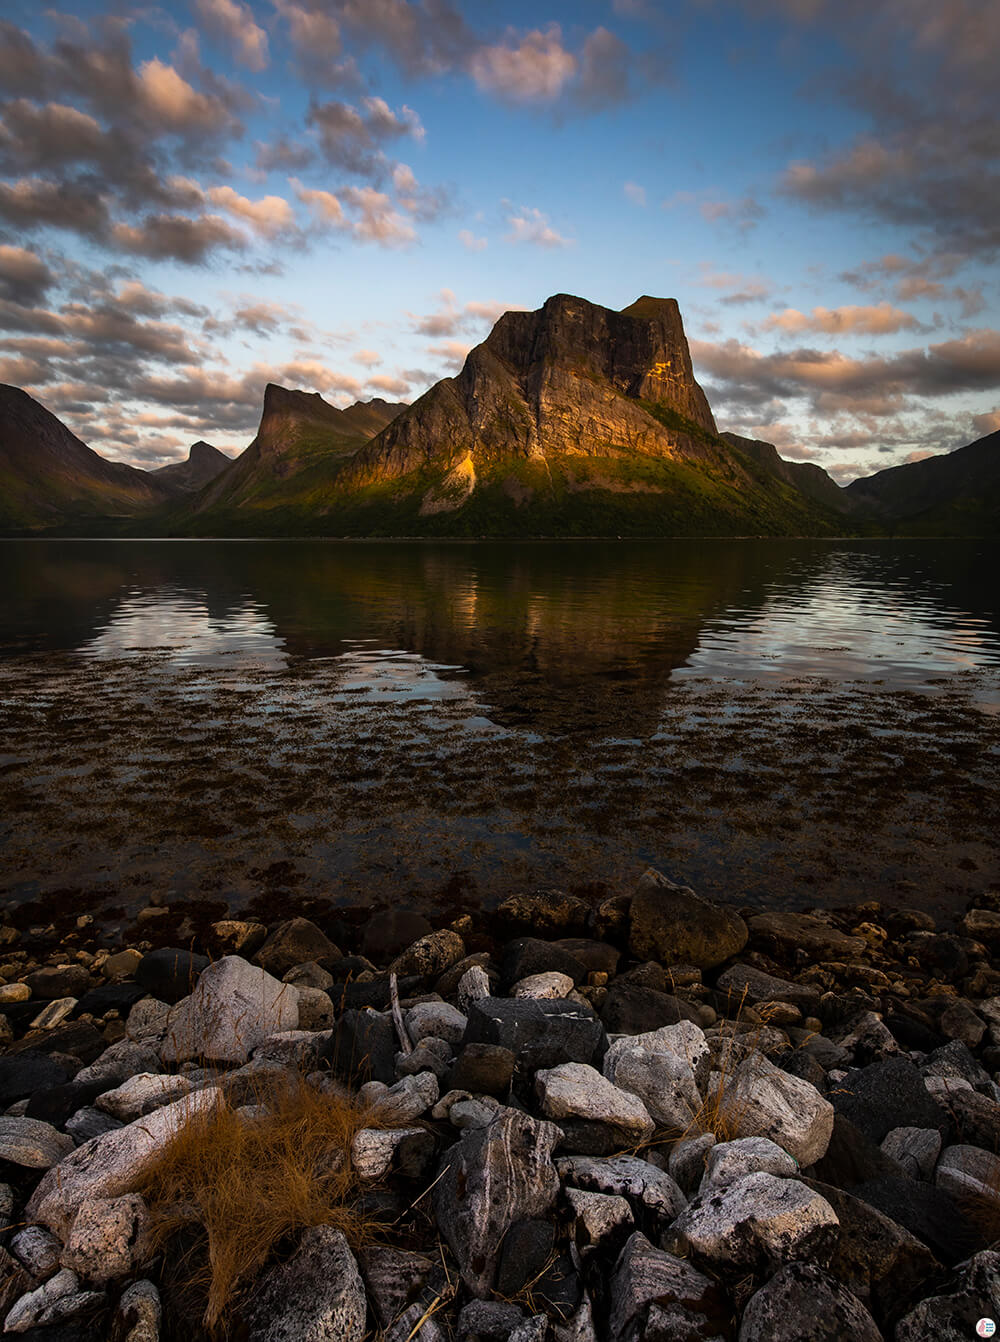 Skolpan mountain, Bergsbotn, Senja, Northern Norway